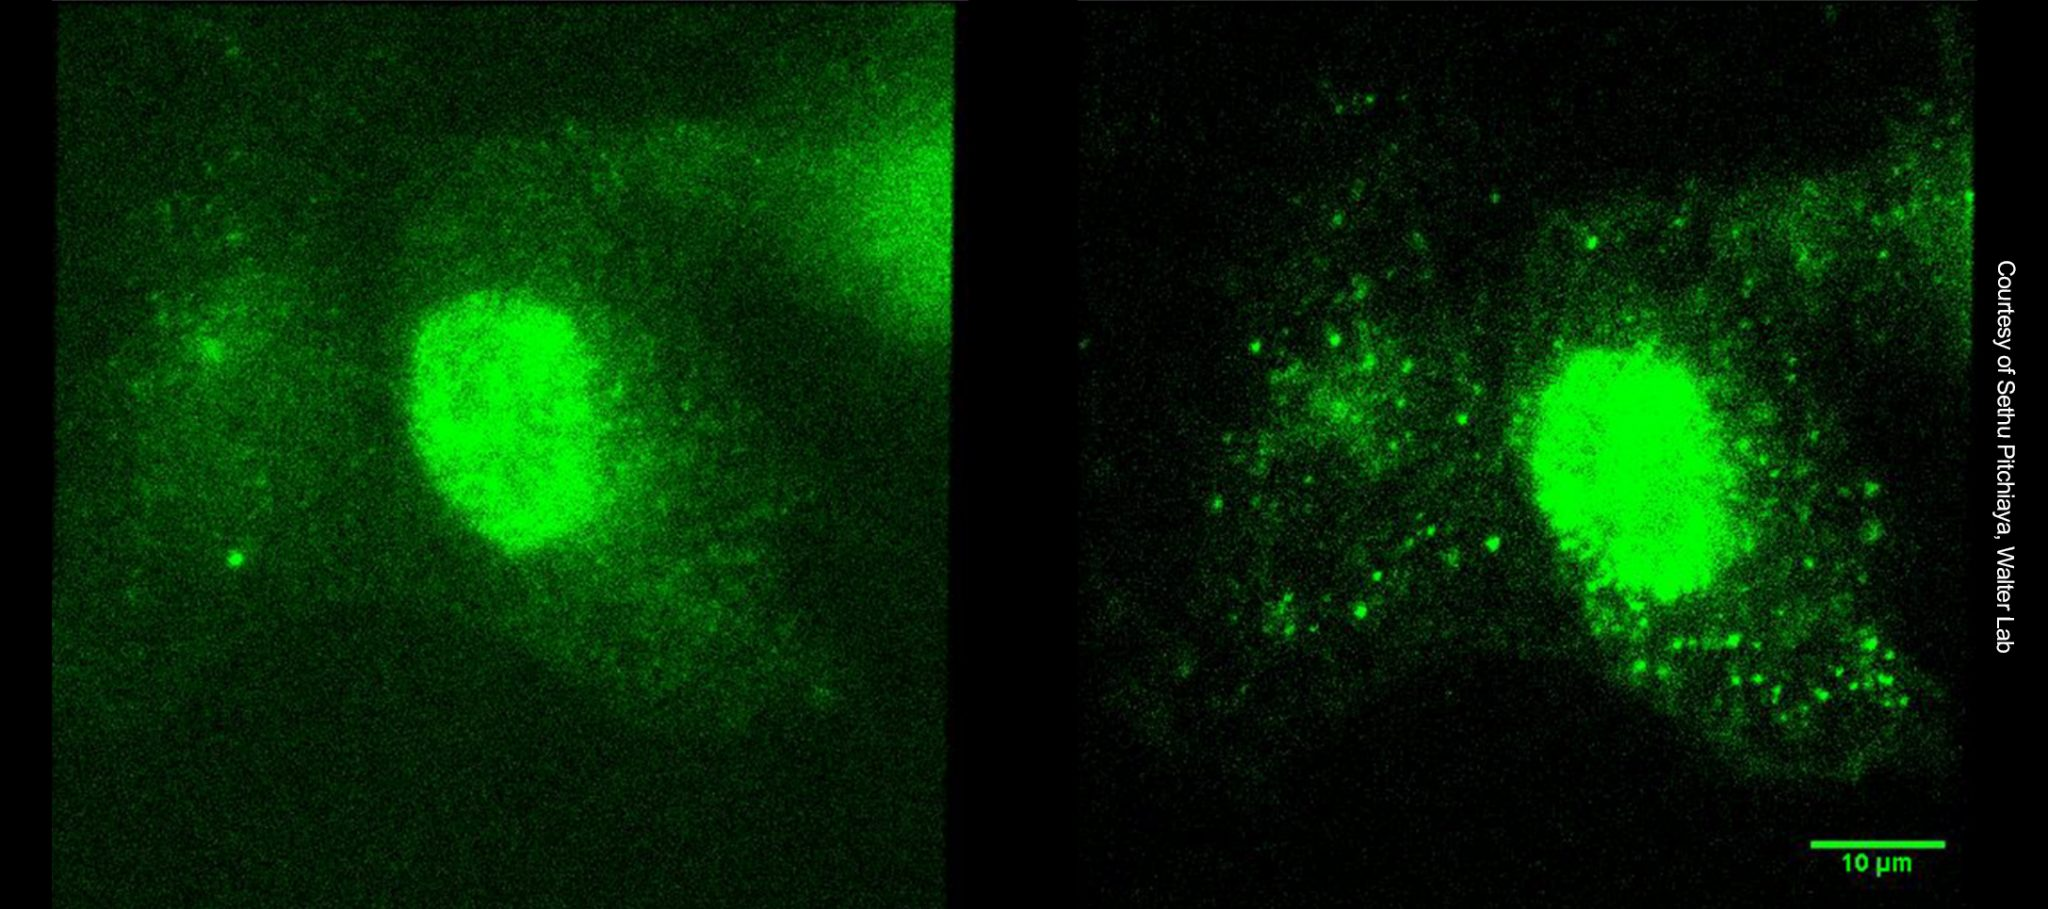 Widefield fluorescence and HILO imaging images